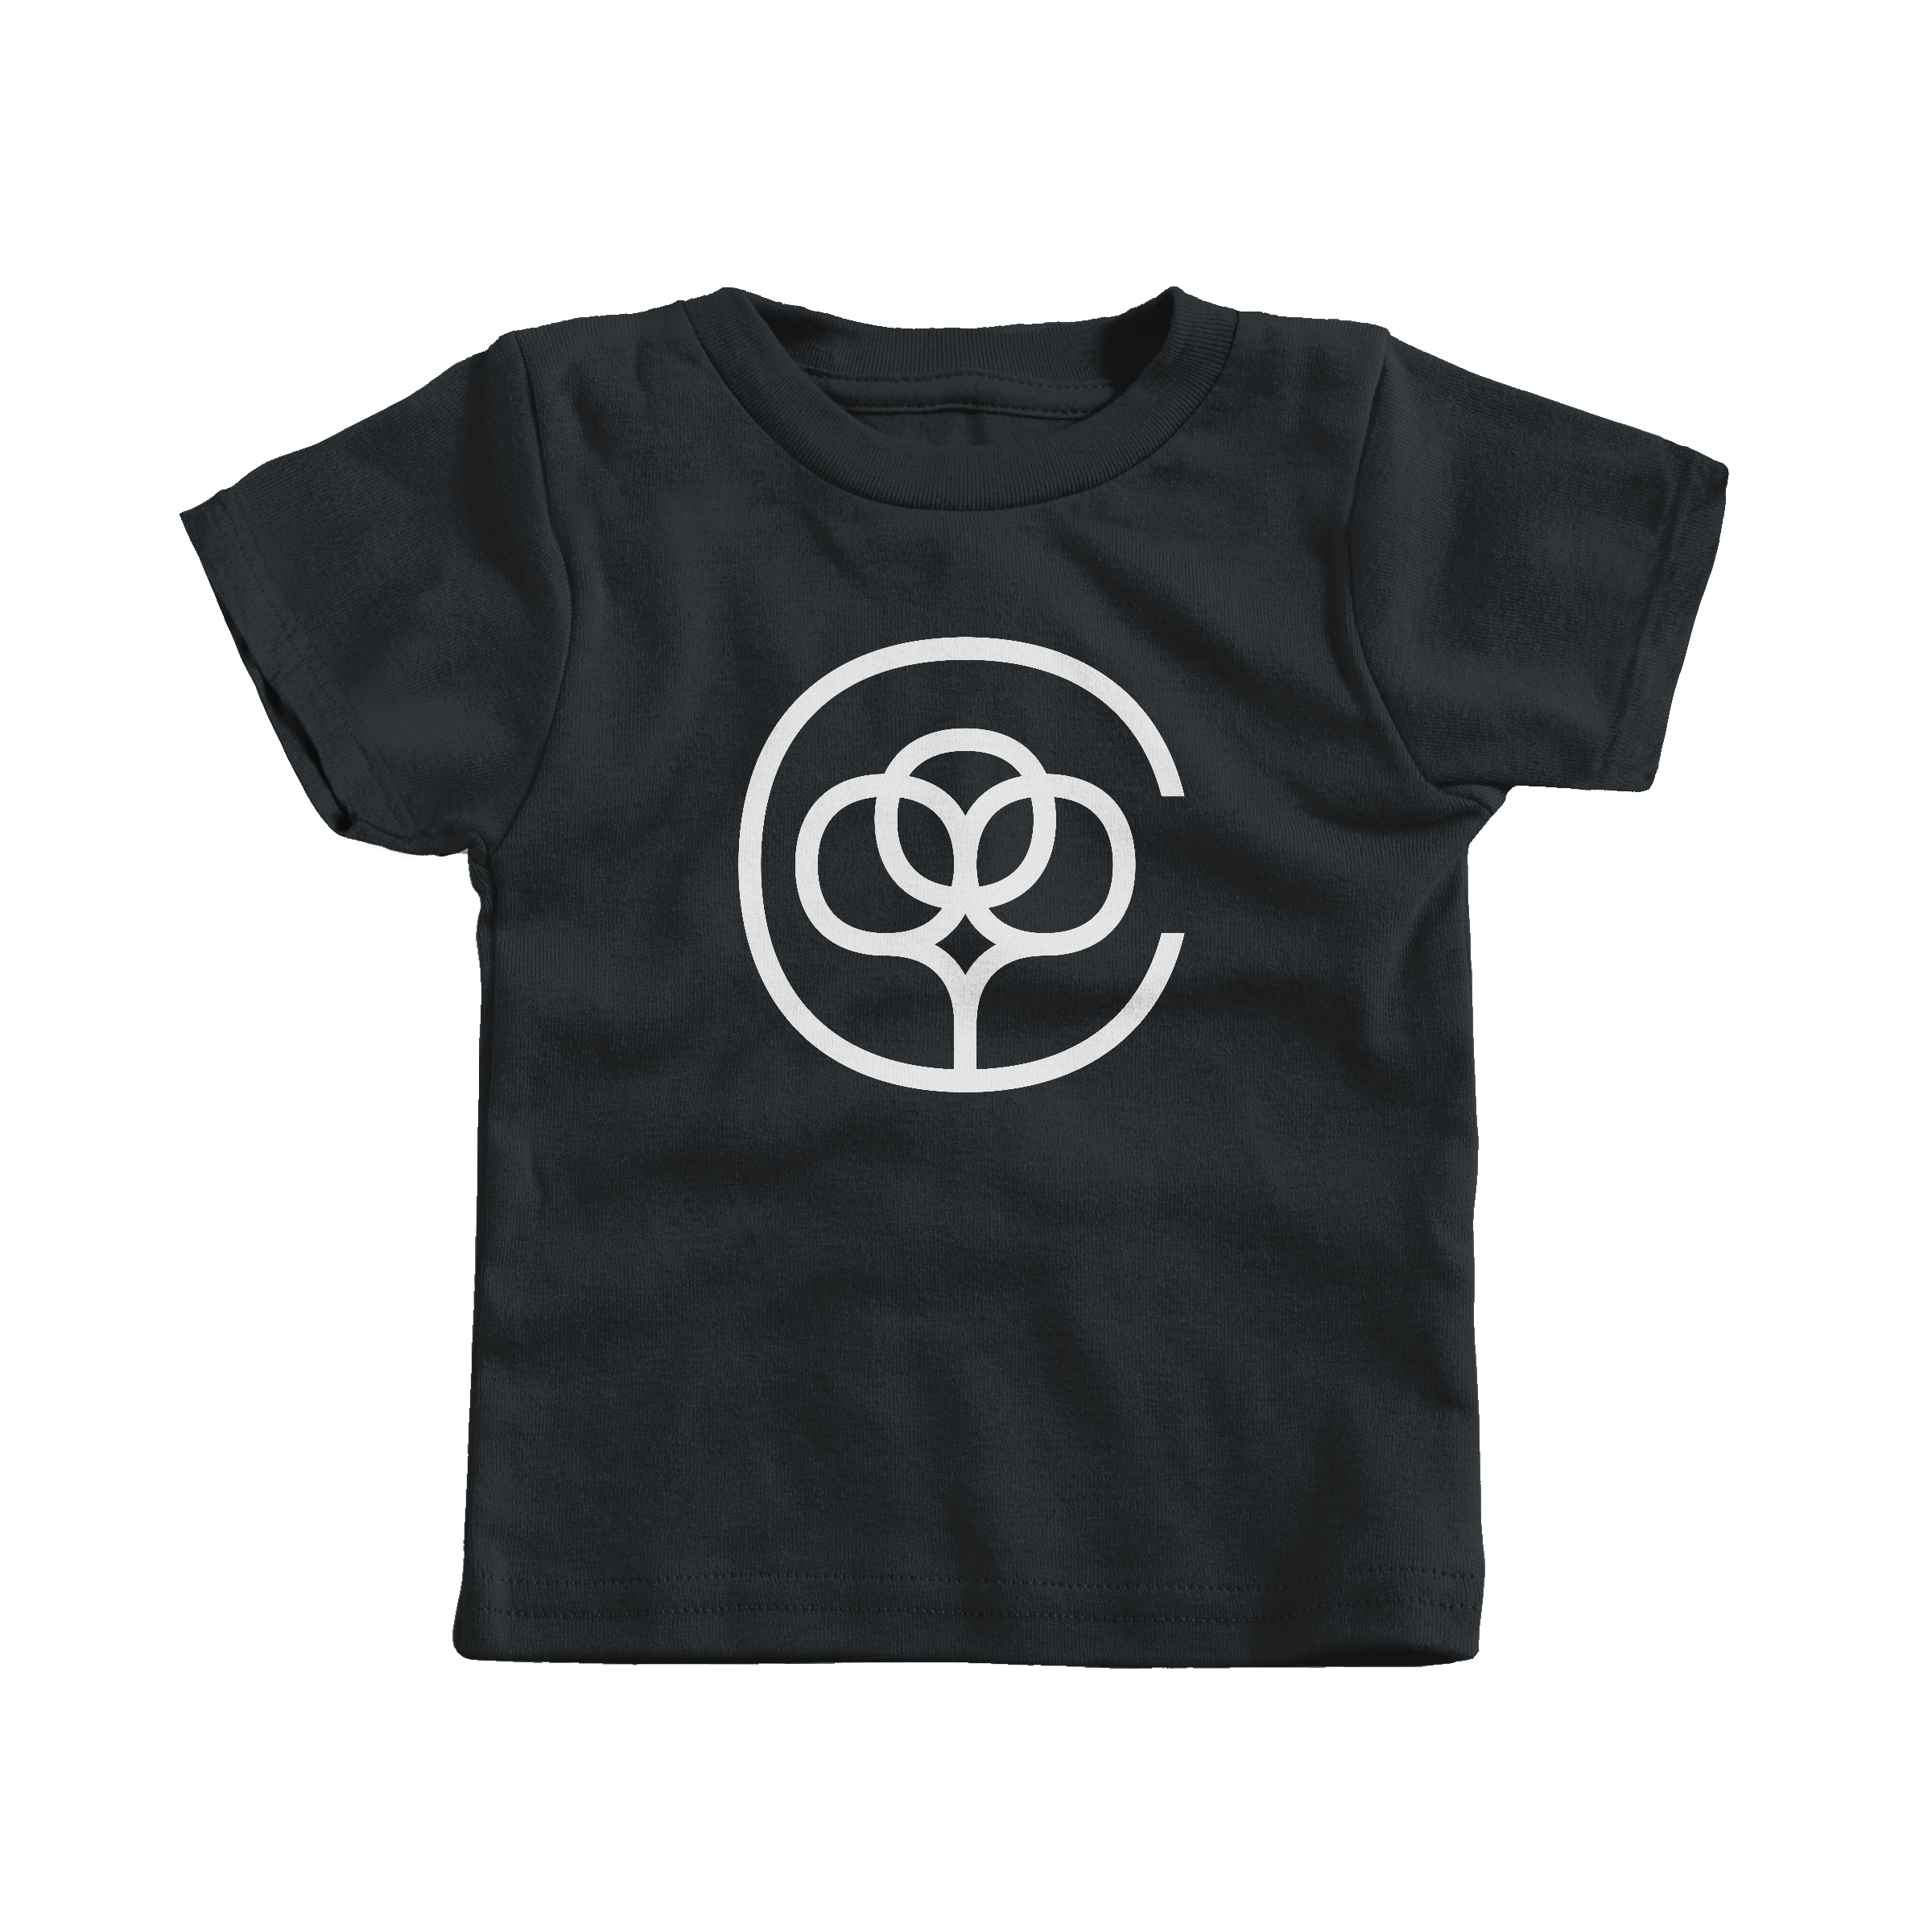 The Cotton Bureau Kid's Tee